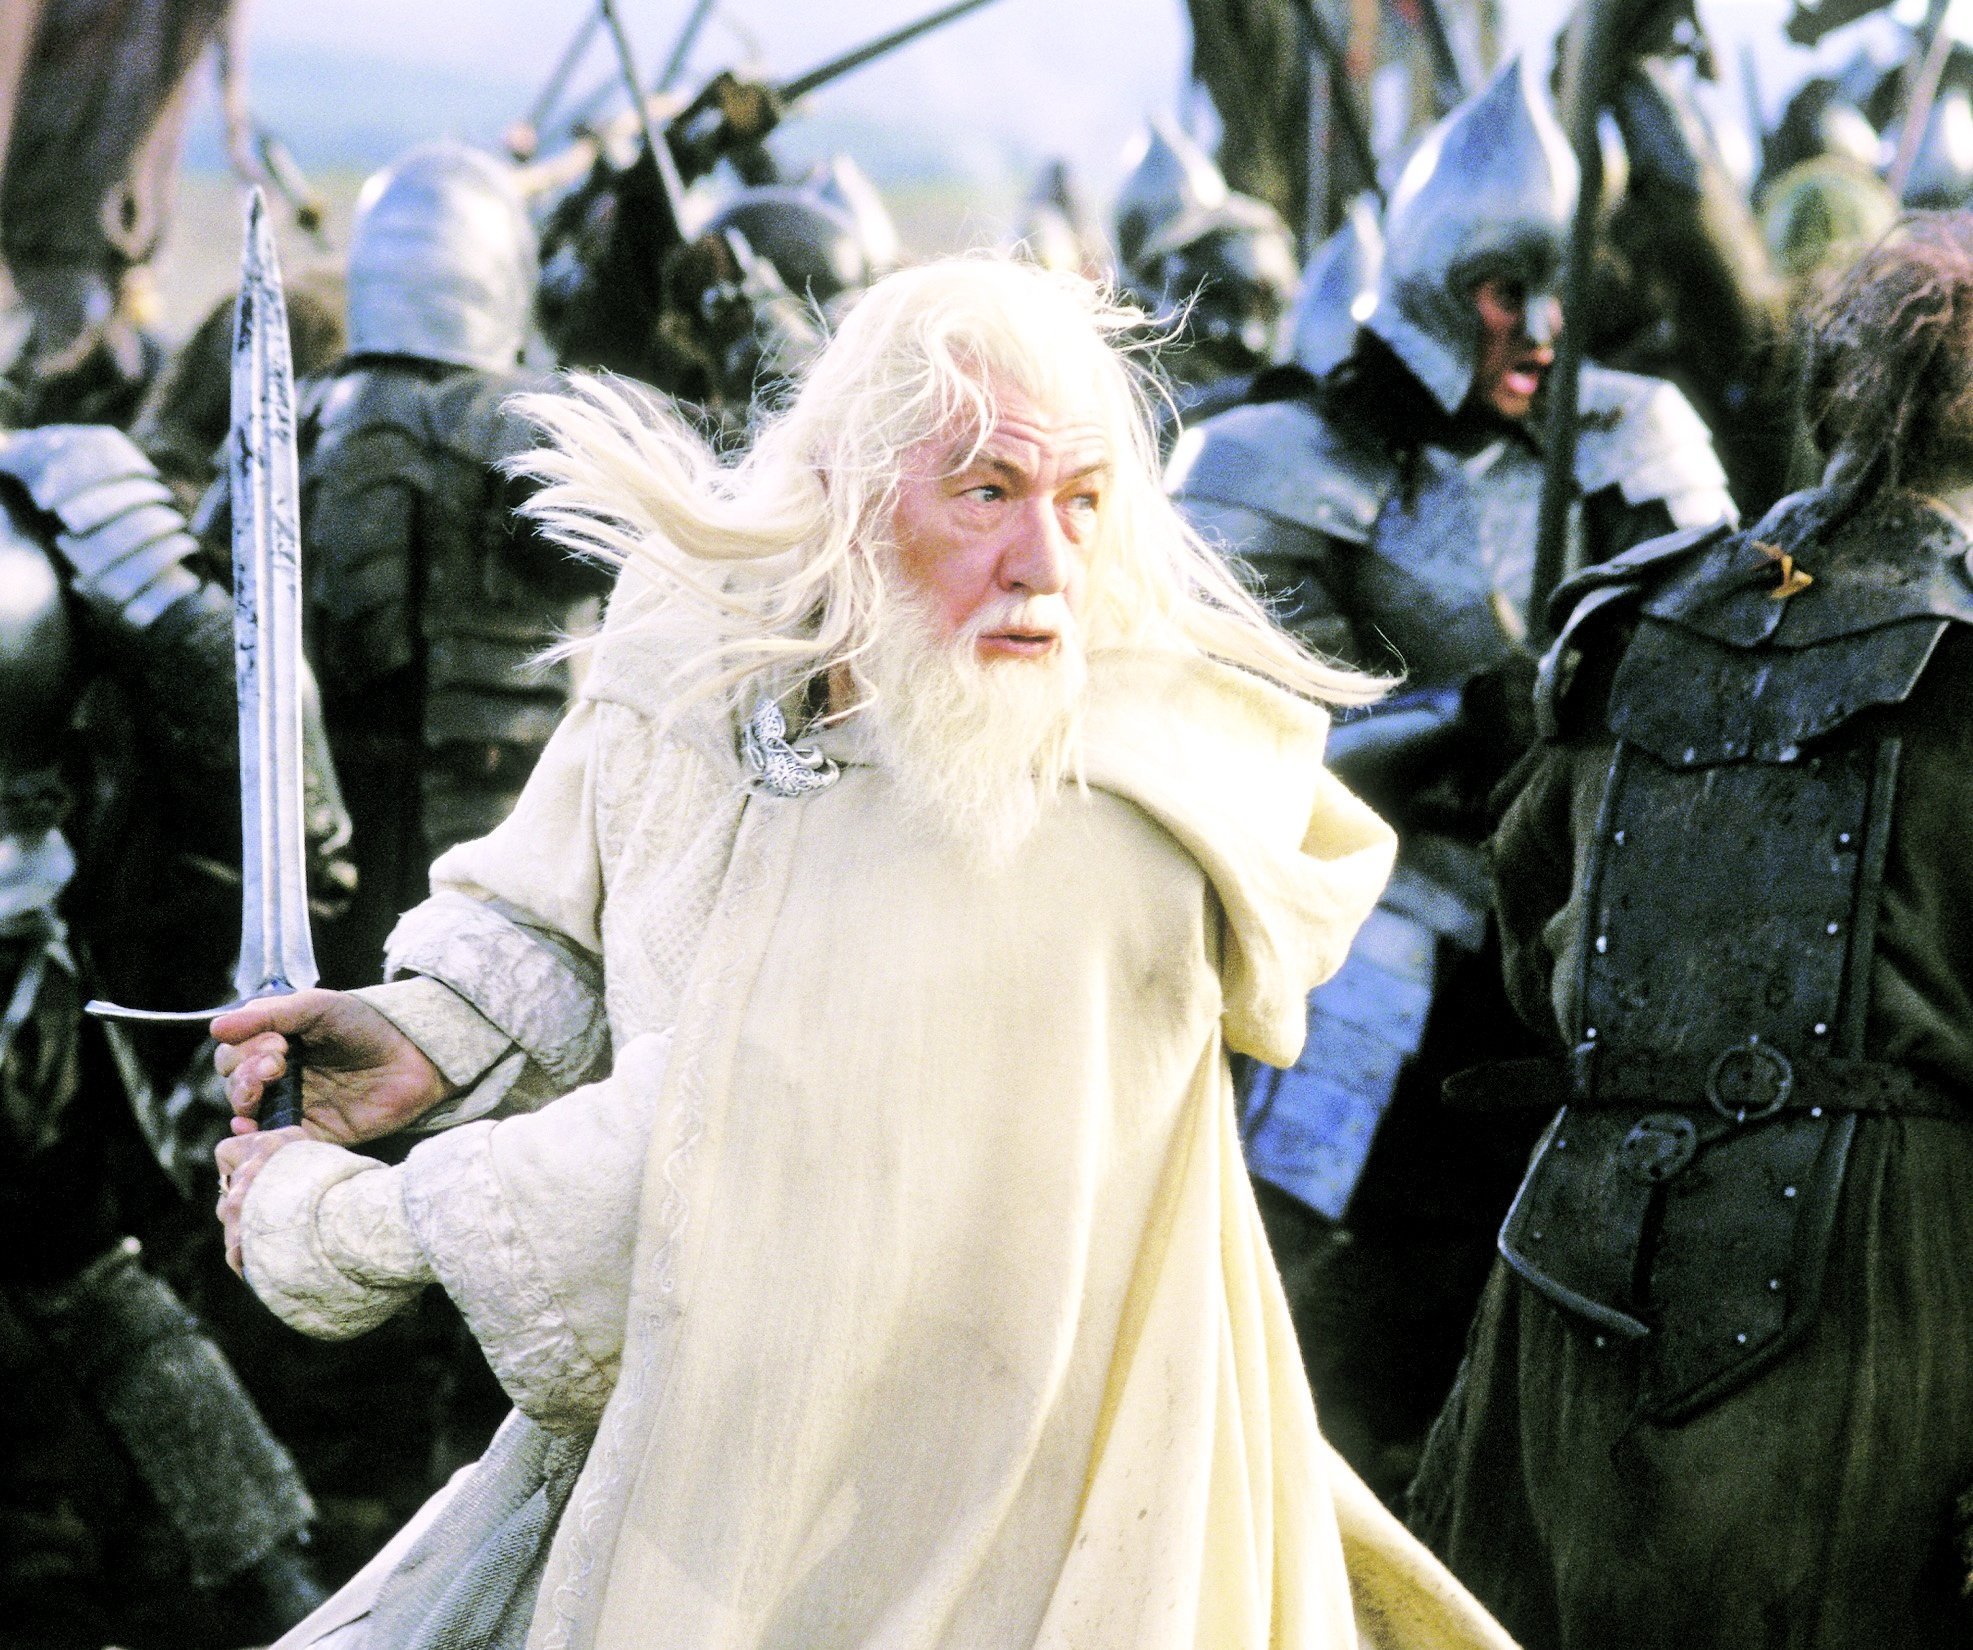 Ian McKellen as Gandalf in The Lord of the Rings: The return of the King. (AP/Archive Photo)